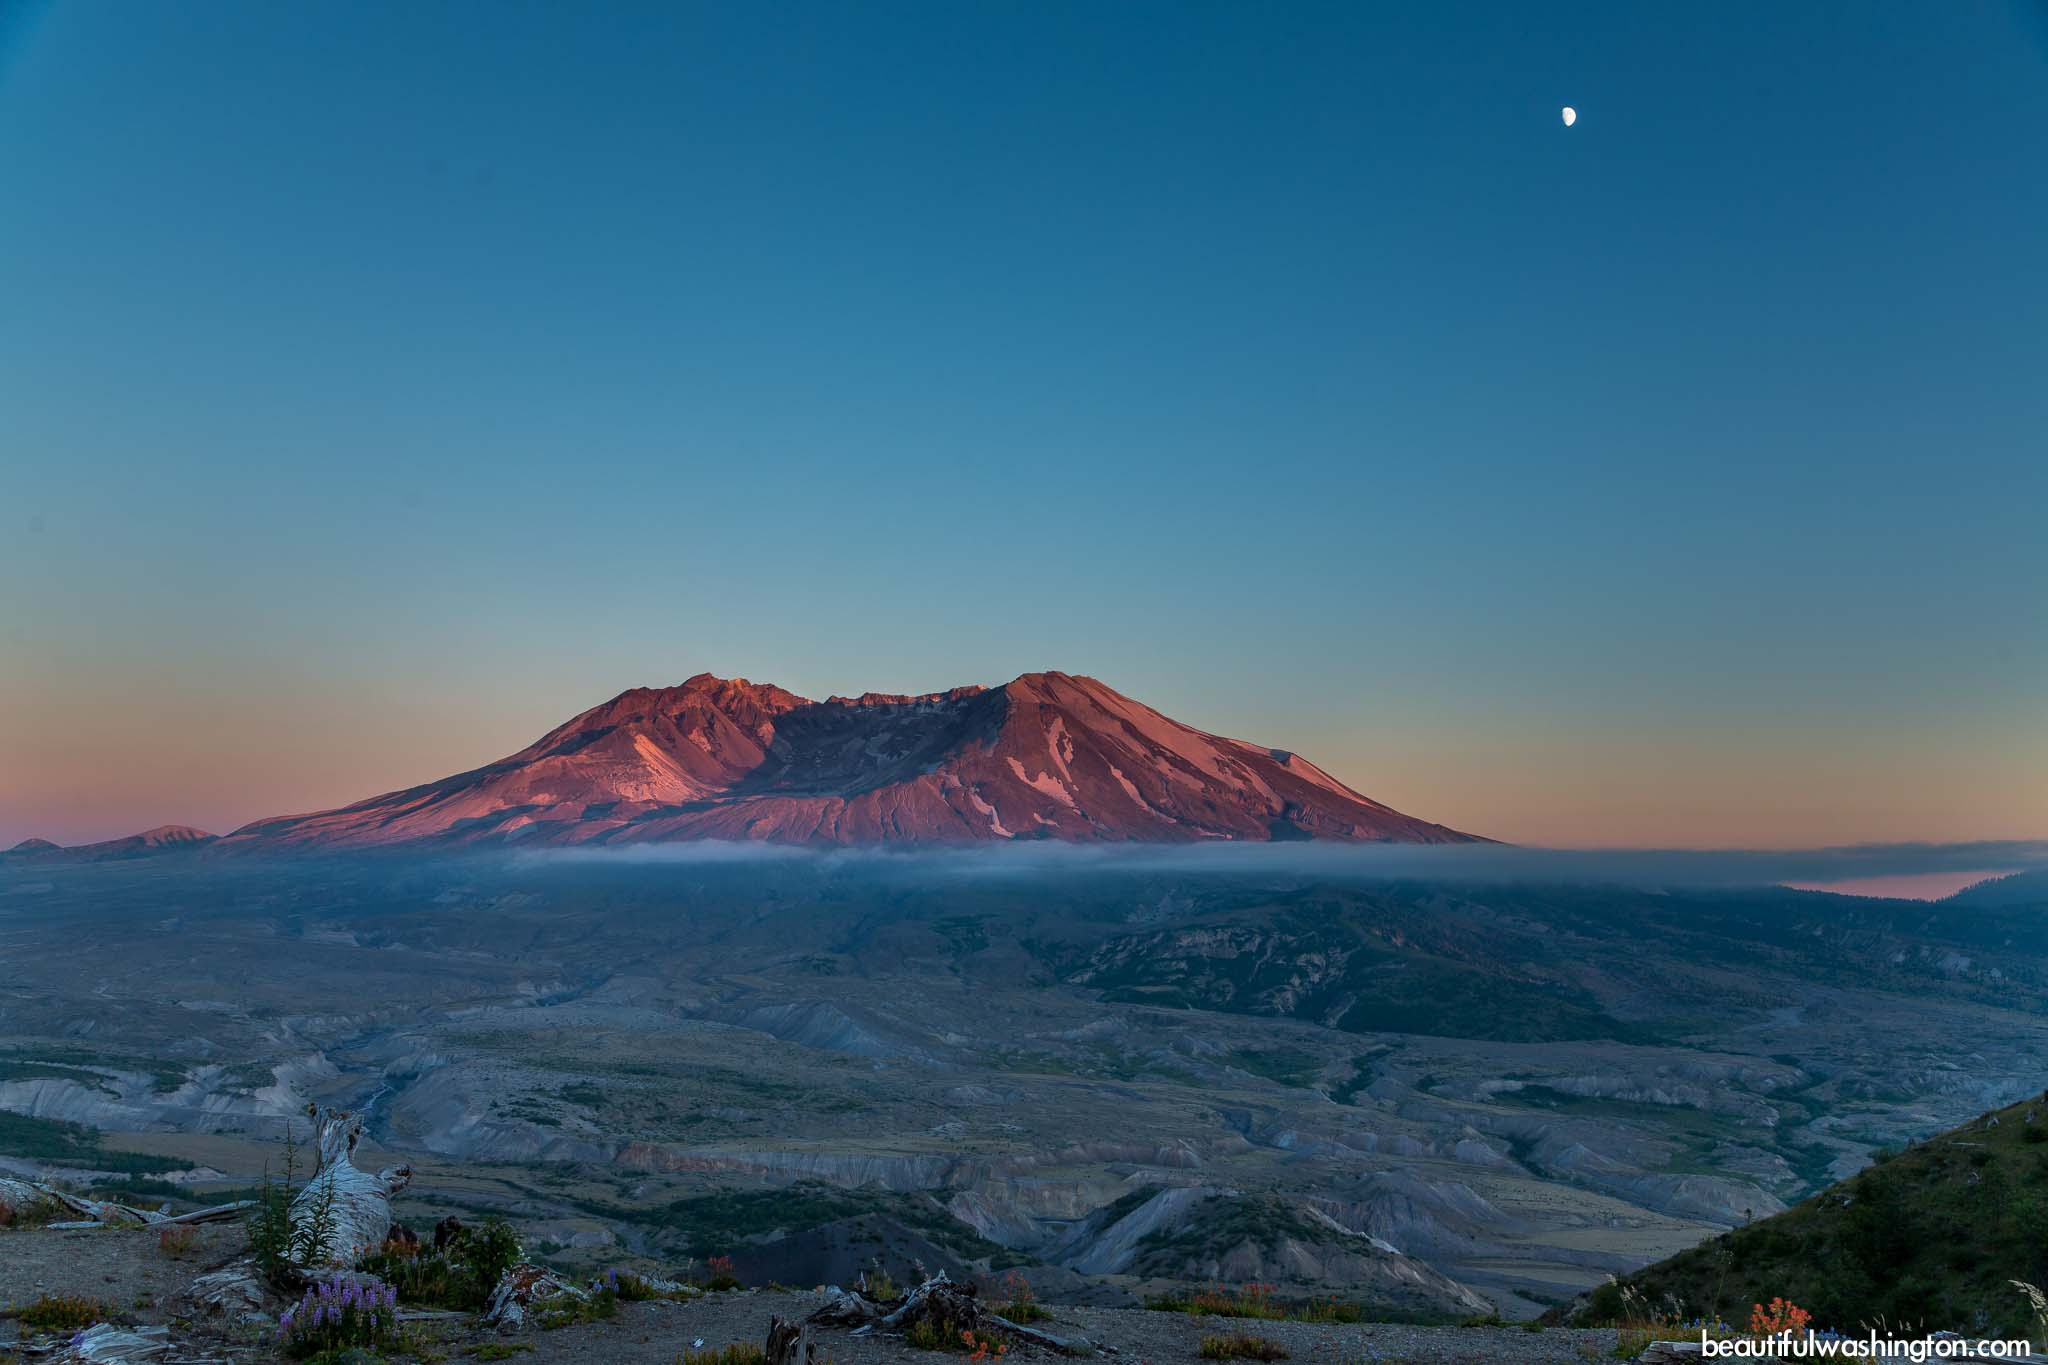 Photo from Mt. St. Helens, Johnston Ridge Observatory